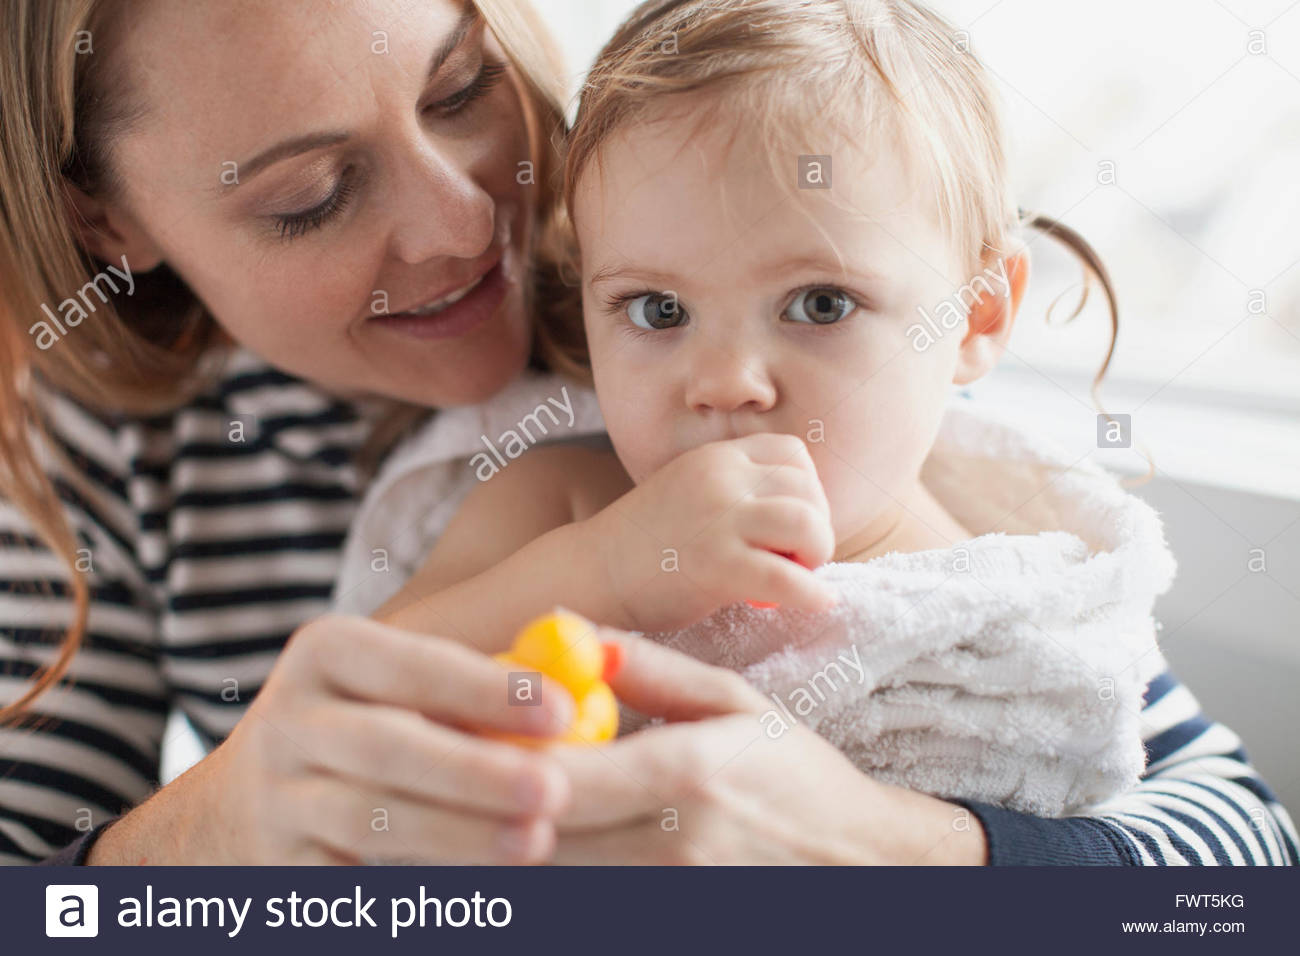 Mother holding baby girl wrapped in towel after bath - Stock Image